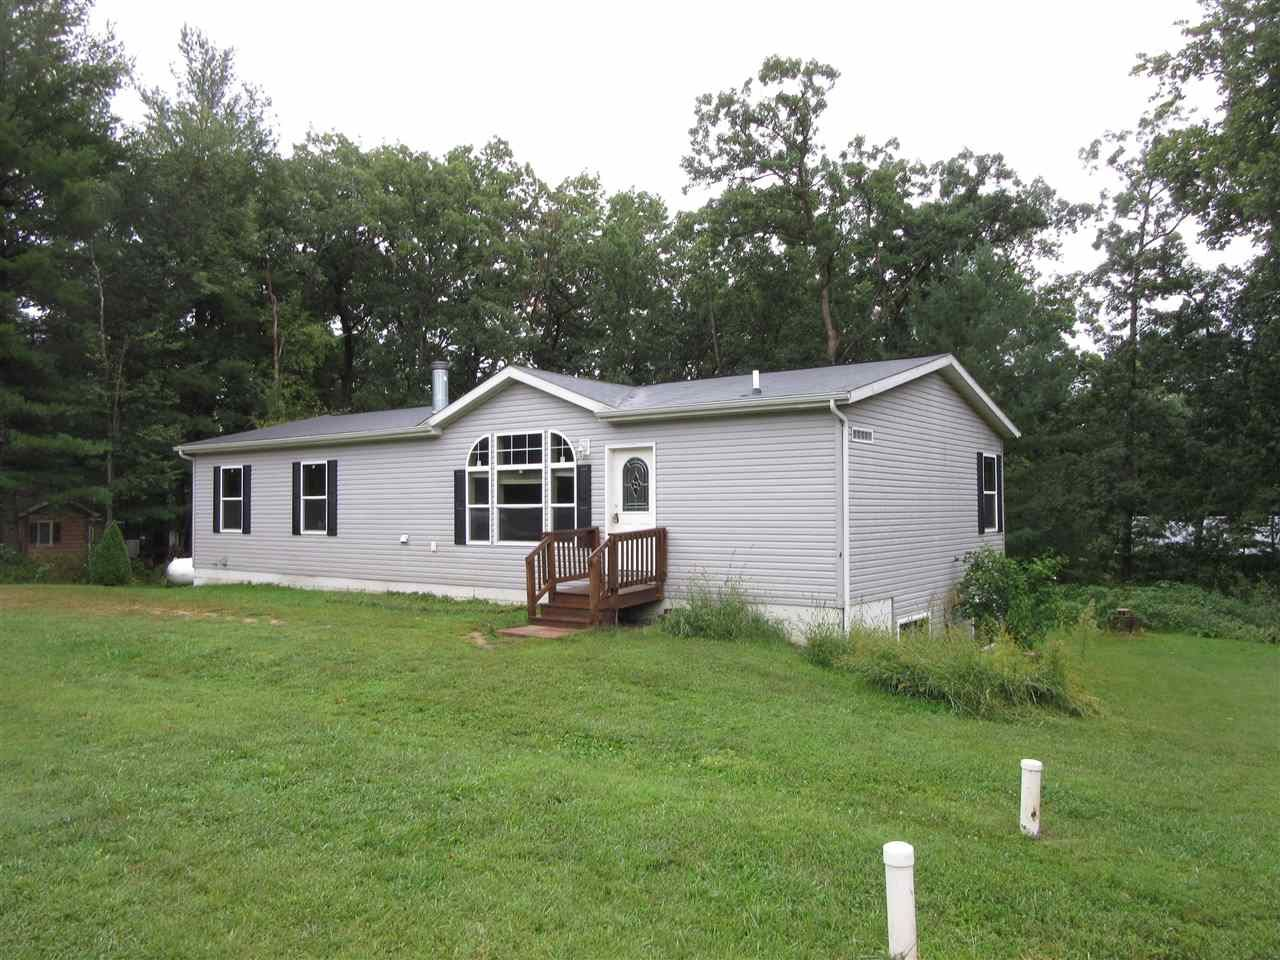 259 Indian Mound St, Oxford, WI 53952 - #: 1893142